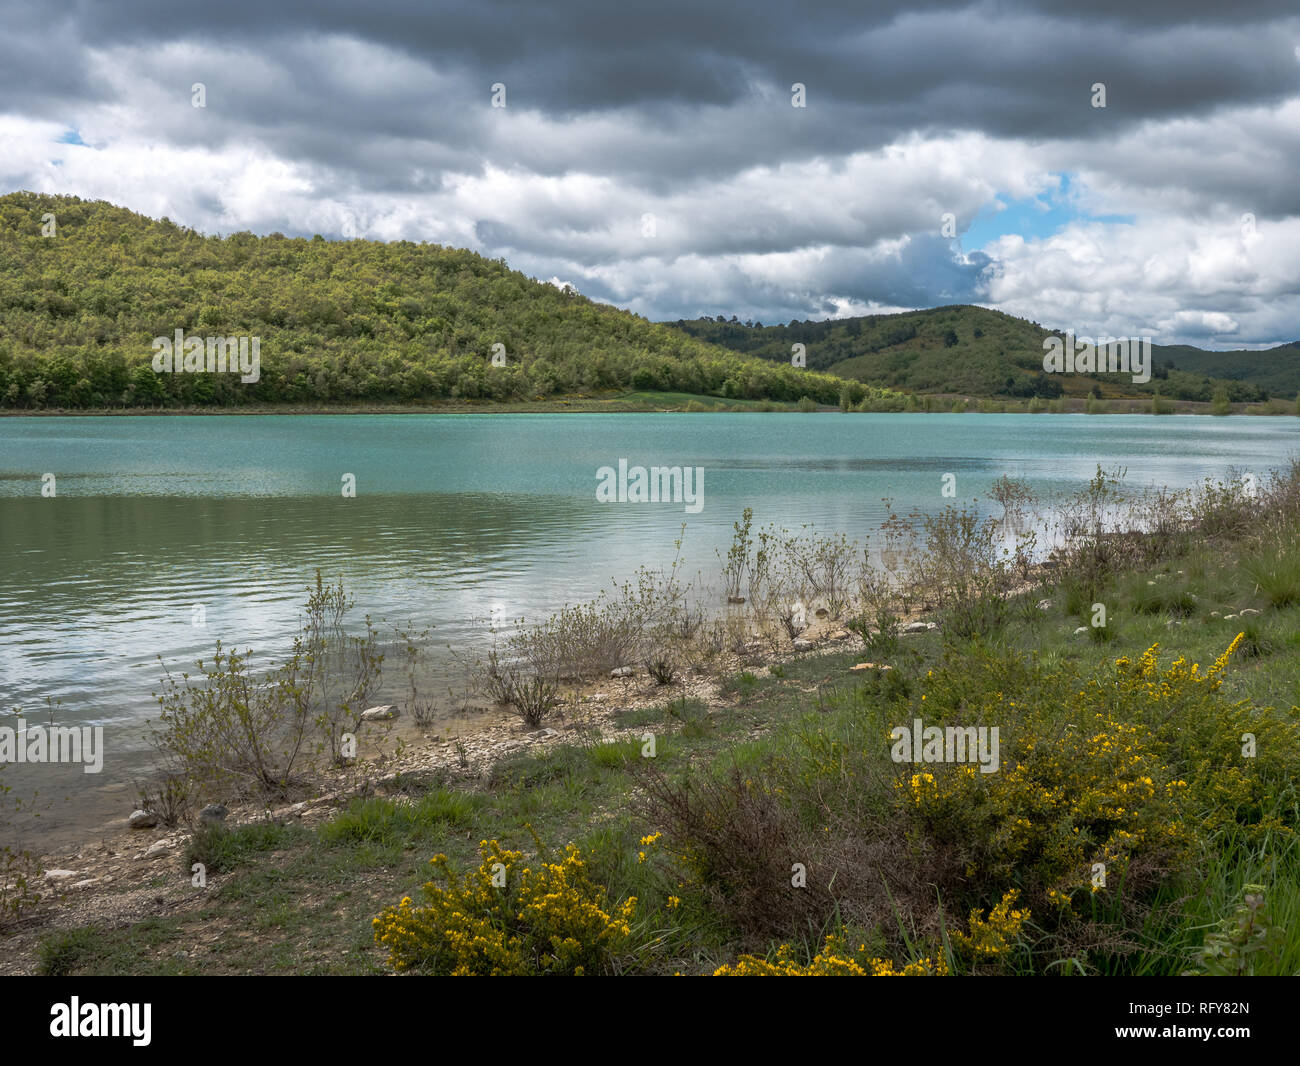 Retention basin for agricultural irrigation, Vitoria mountain range, Basque Country, Spain - Stock Image